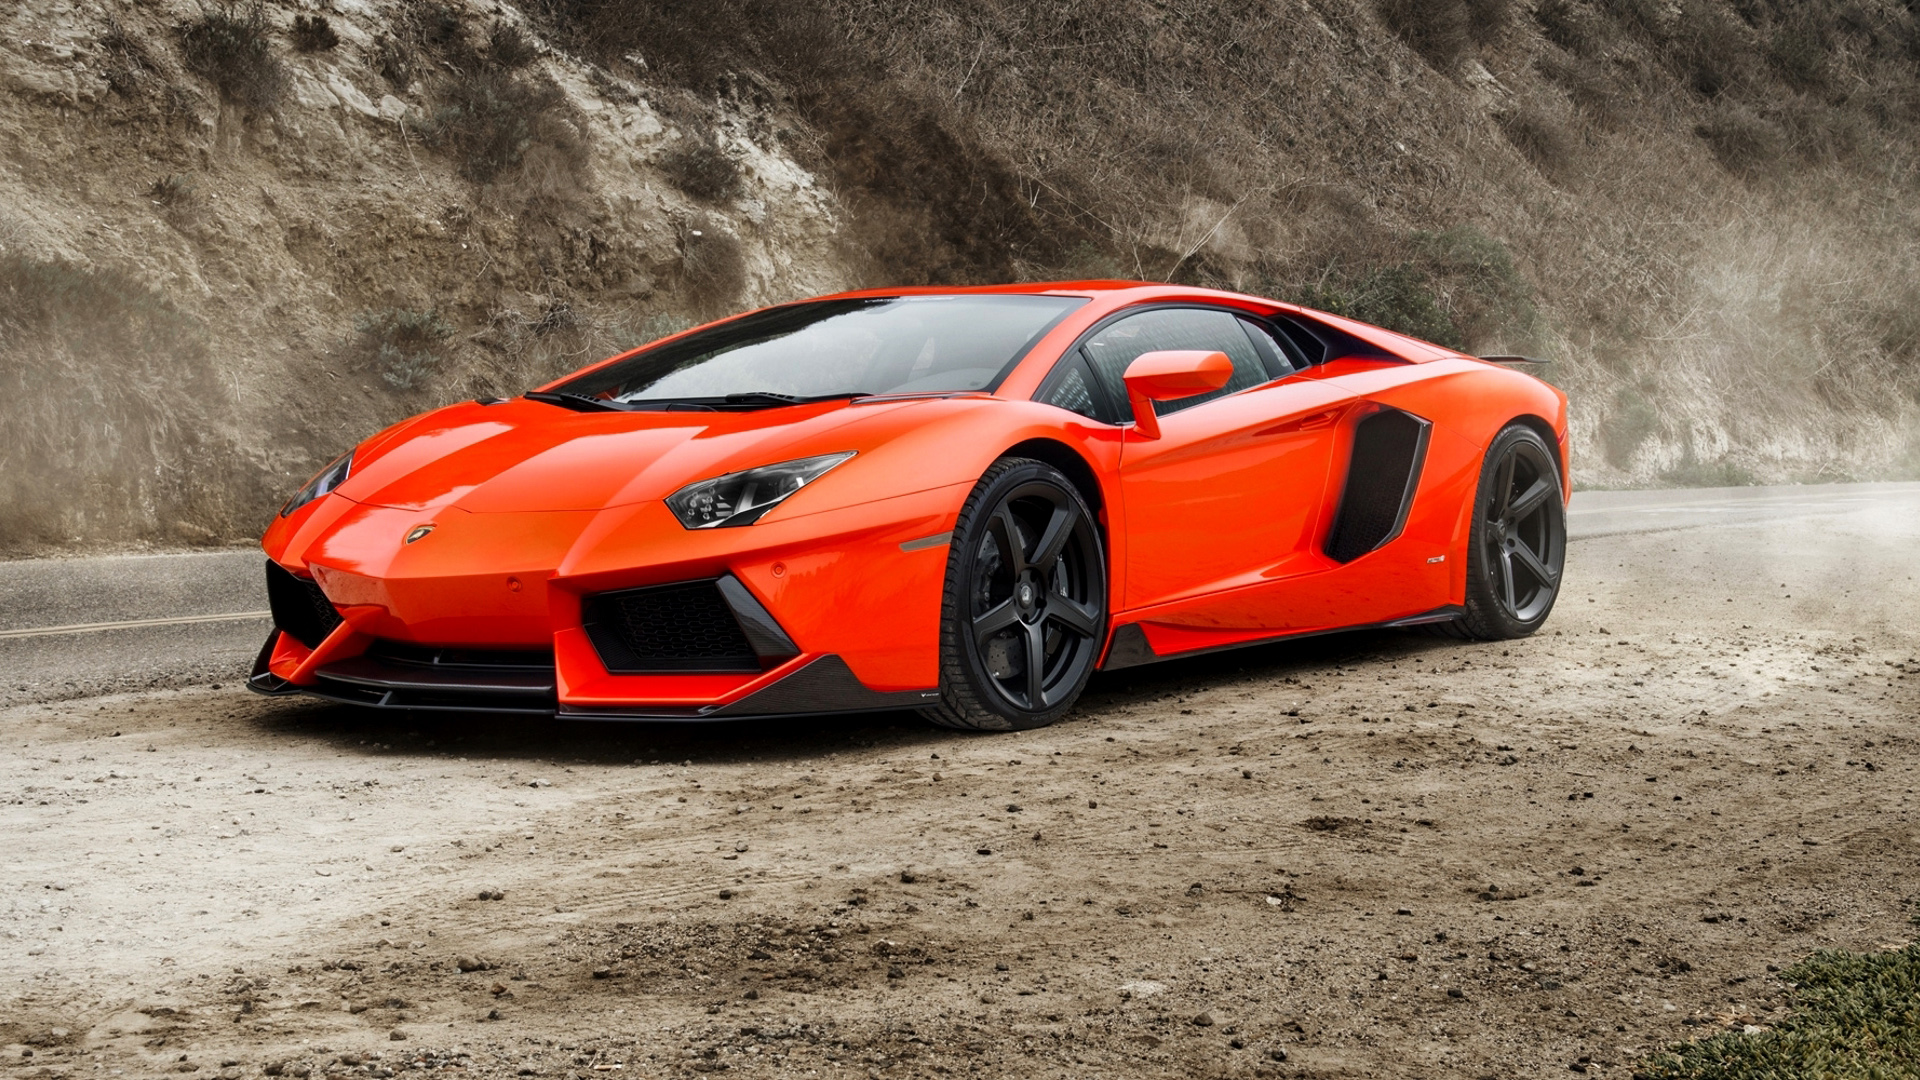 Vorsteiner Tuning for Lamborghini Aventador Wallpaper | HD Car ...